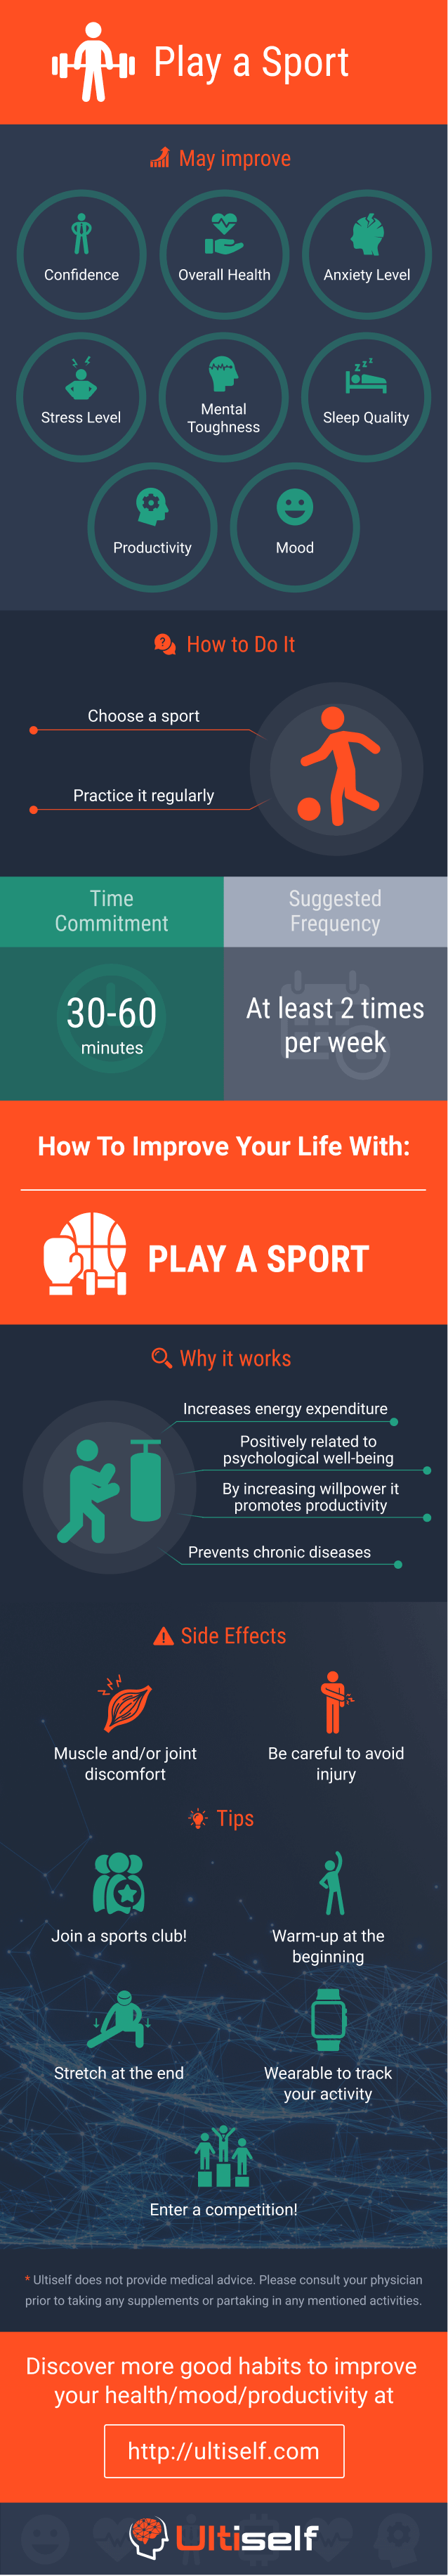 Play a Sport infographic